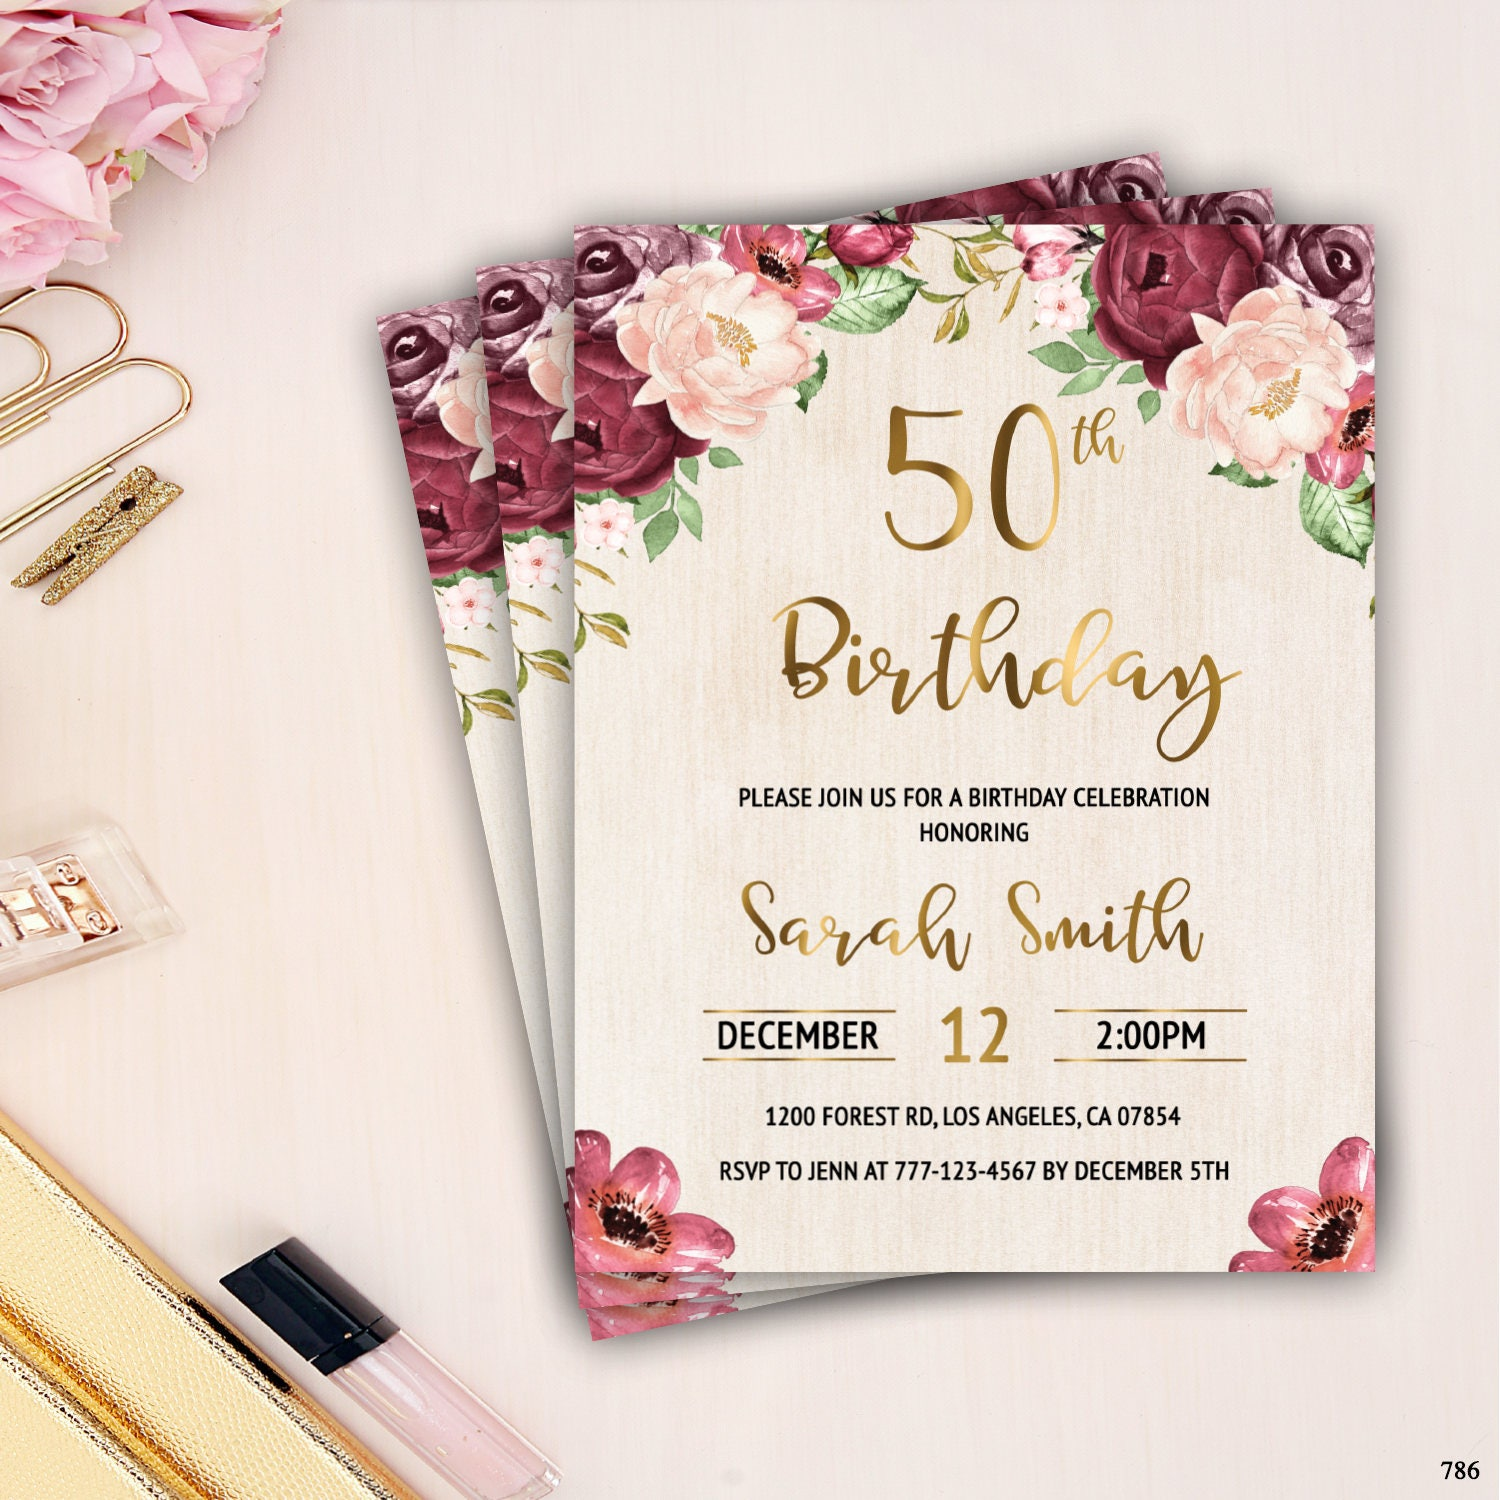 50th birthday invitation female adult birthday invitation etsy zoom izmirmasajfo